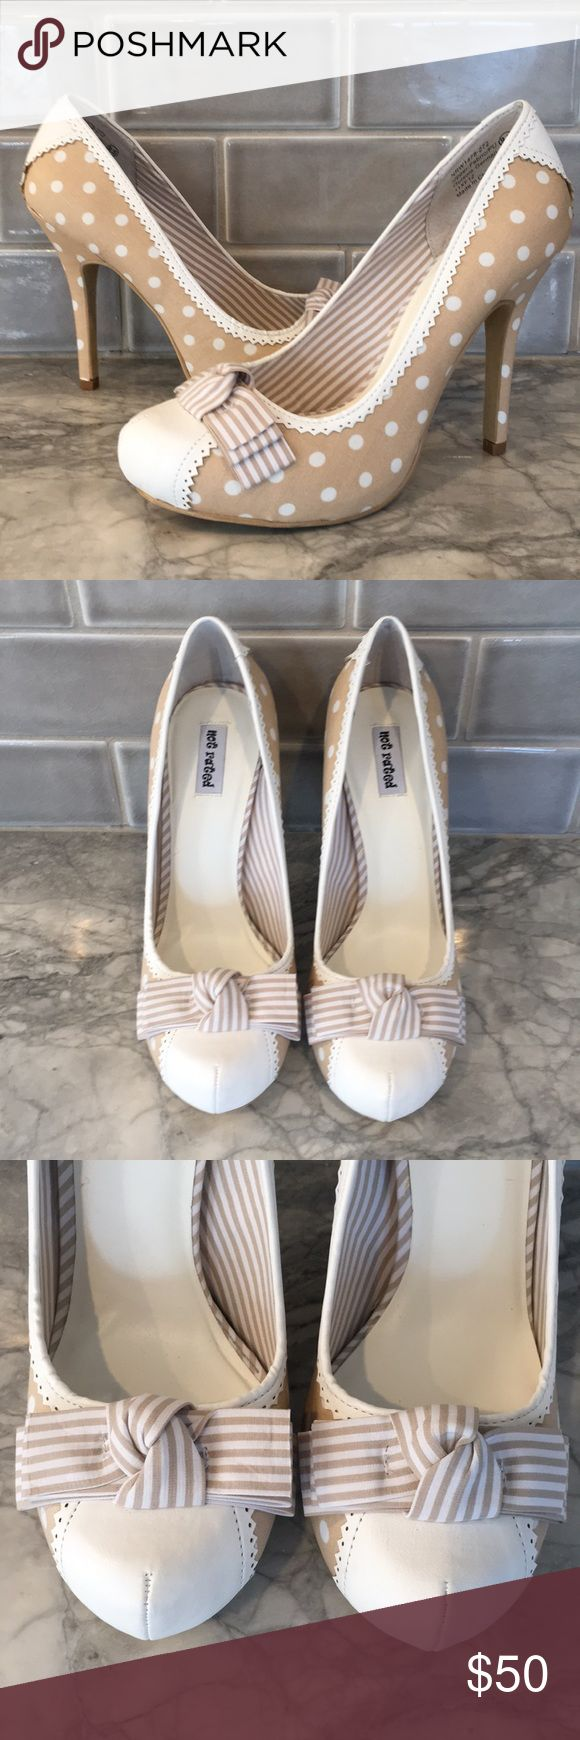 "New Not rated polka dot bow high heels pumps 9.5 Get ready for spring with these adorable pumps by Not Rated  Style name ""prim rose"" New in box- never worn  Size 9.5 Tan and white Fabric and synthetic upper  Approx: 1"" platform, 4"" heel Not Rated Shoes Heels"